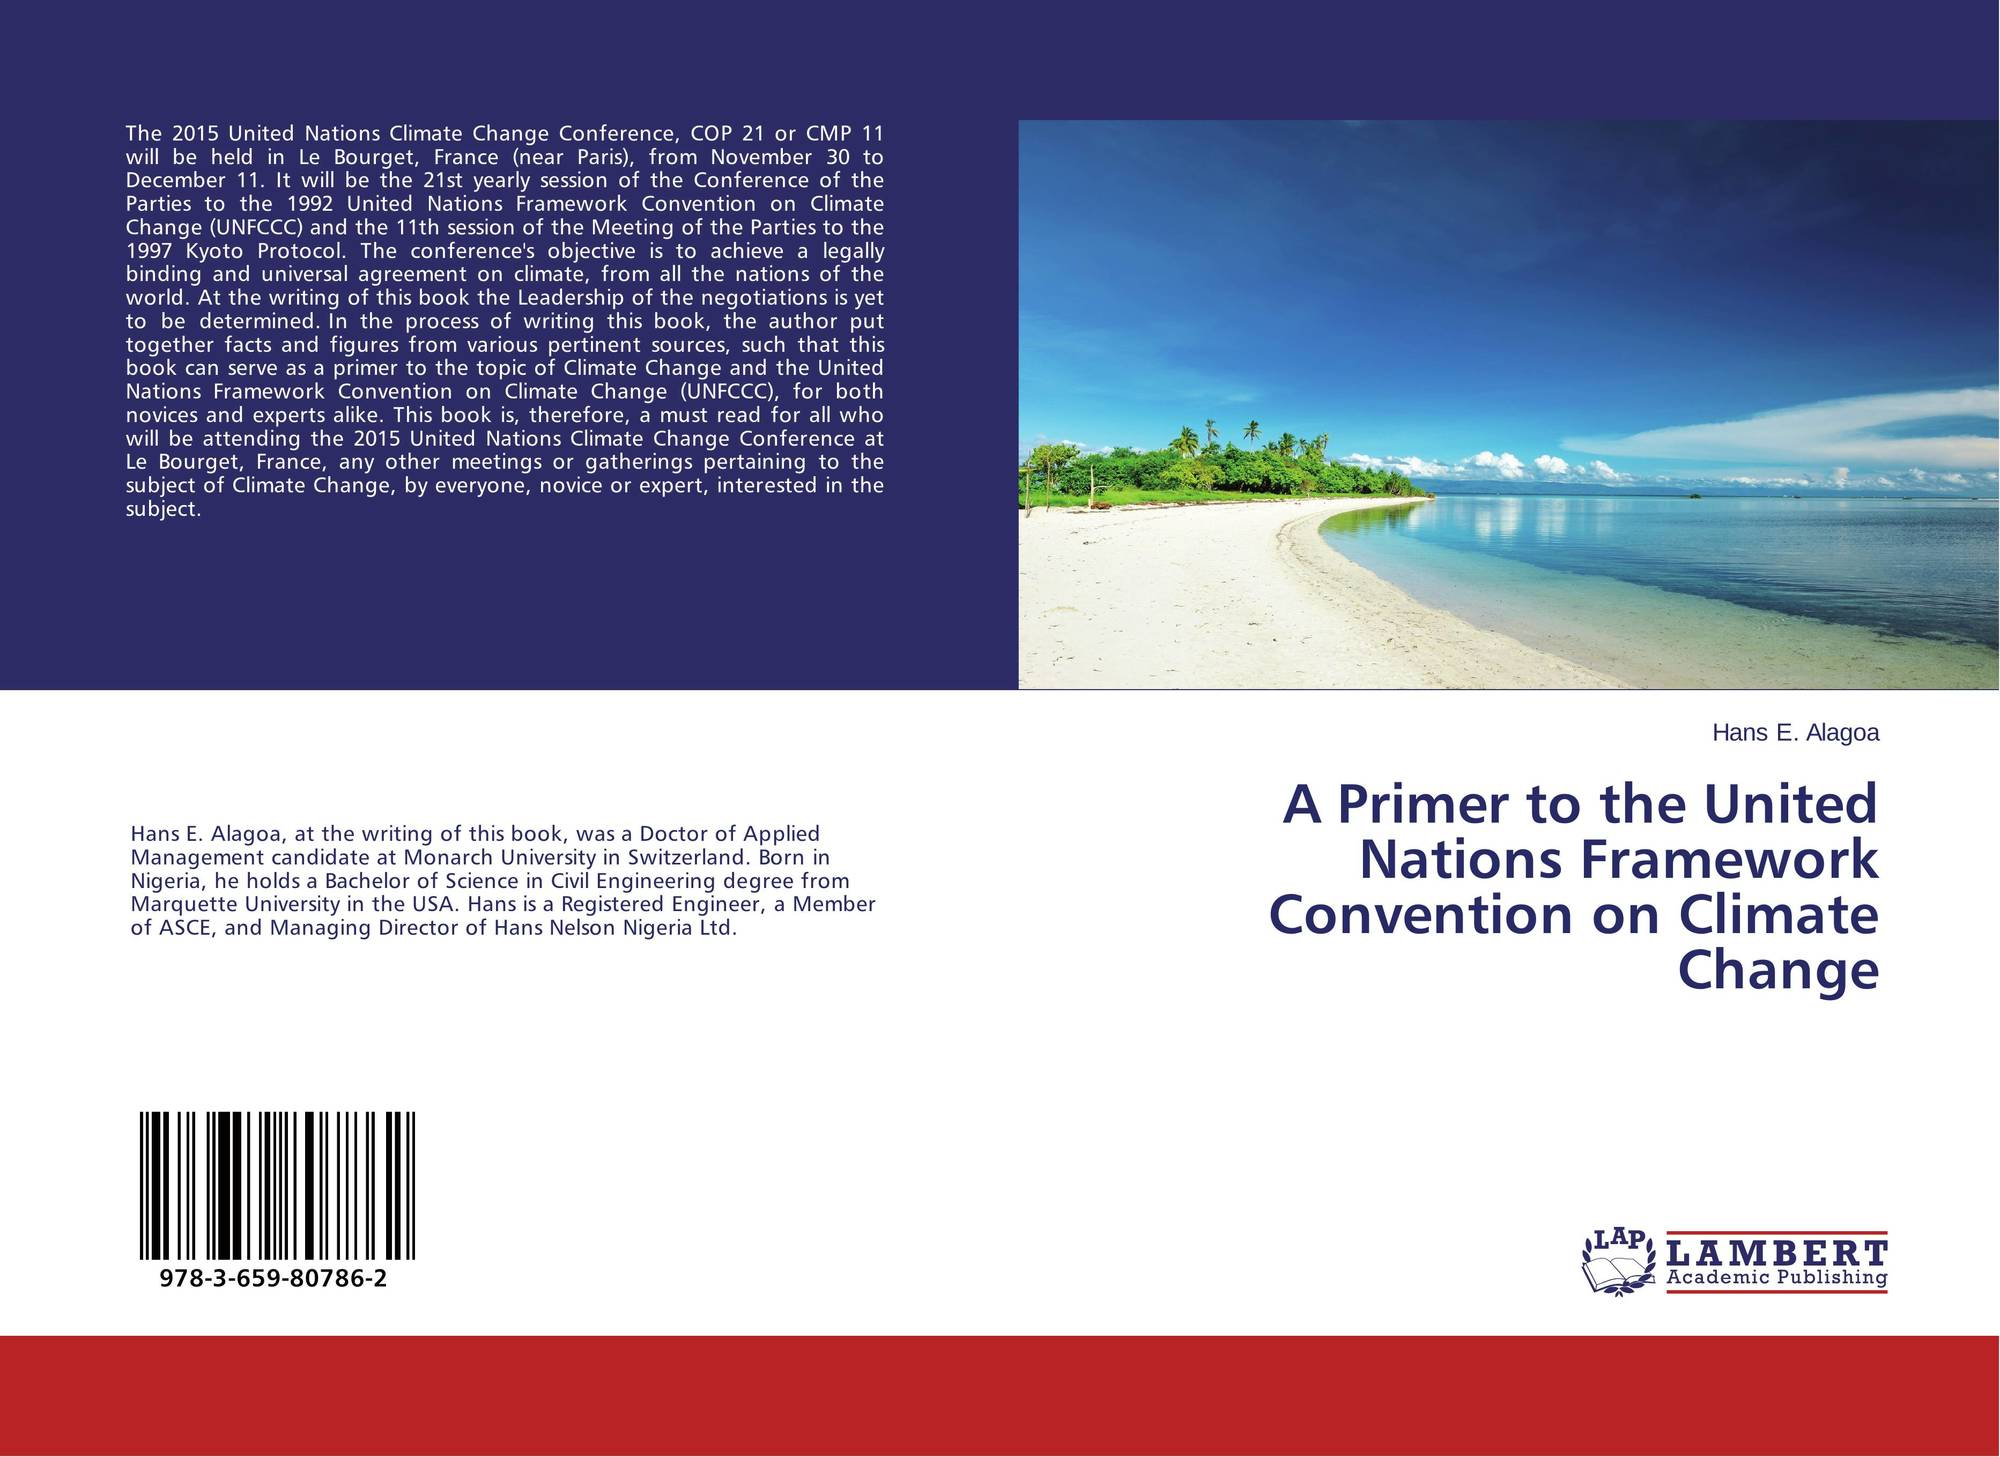 climate change essay framework convention Photo essay  and in the united nations framework convention on climate change (unfccc) unless otherwise indicated, this report uses.